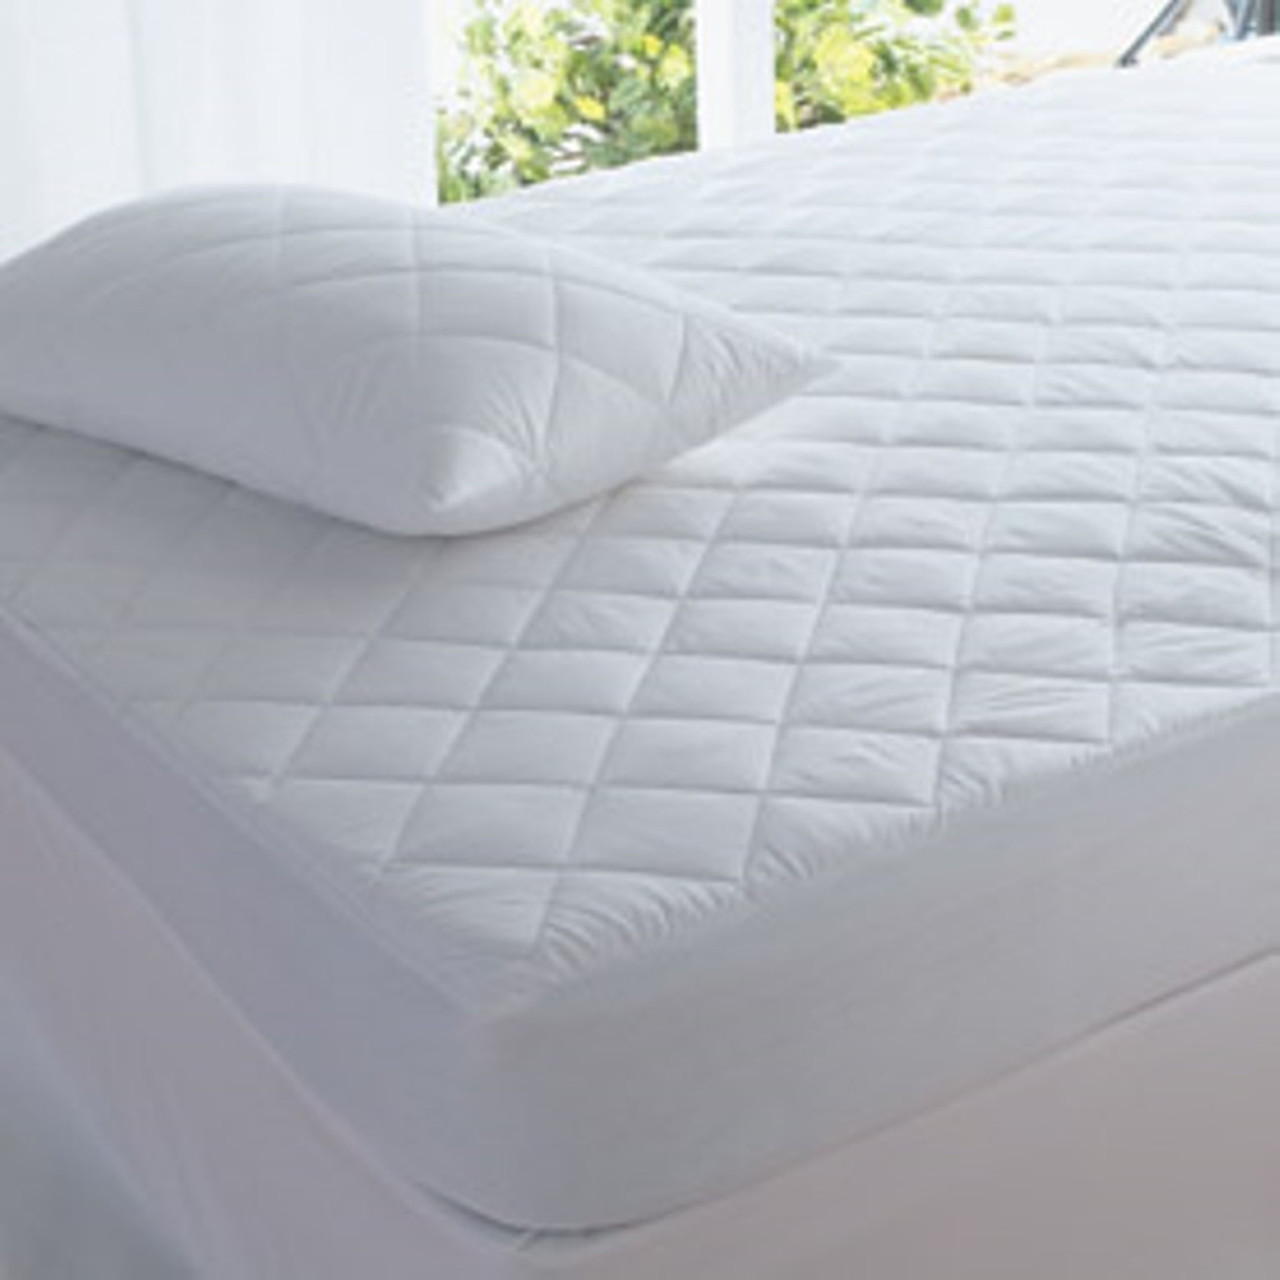 Super King Size Fitted Mattress Protector Quilted 100 Cotton Healthguard Treated The Linen Gallery